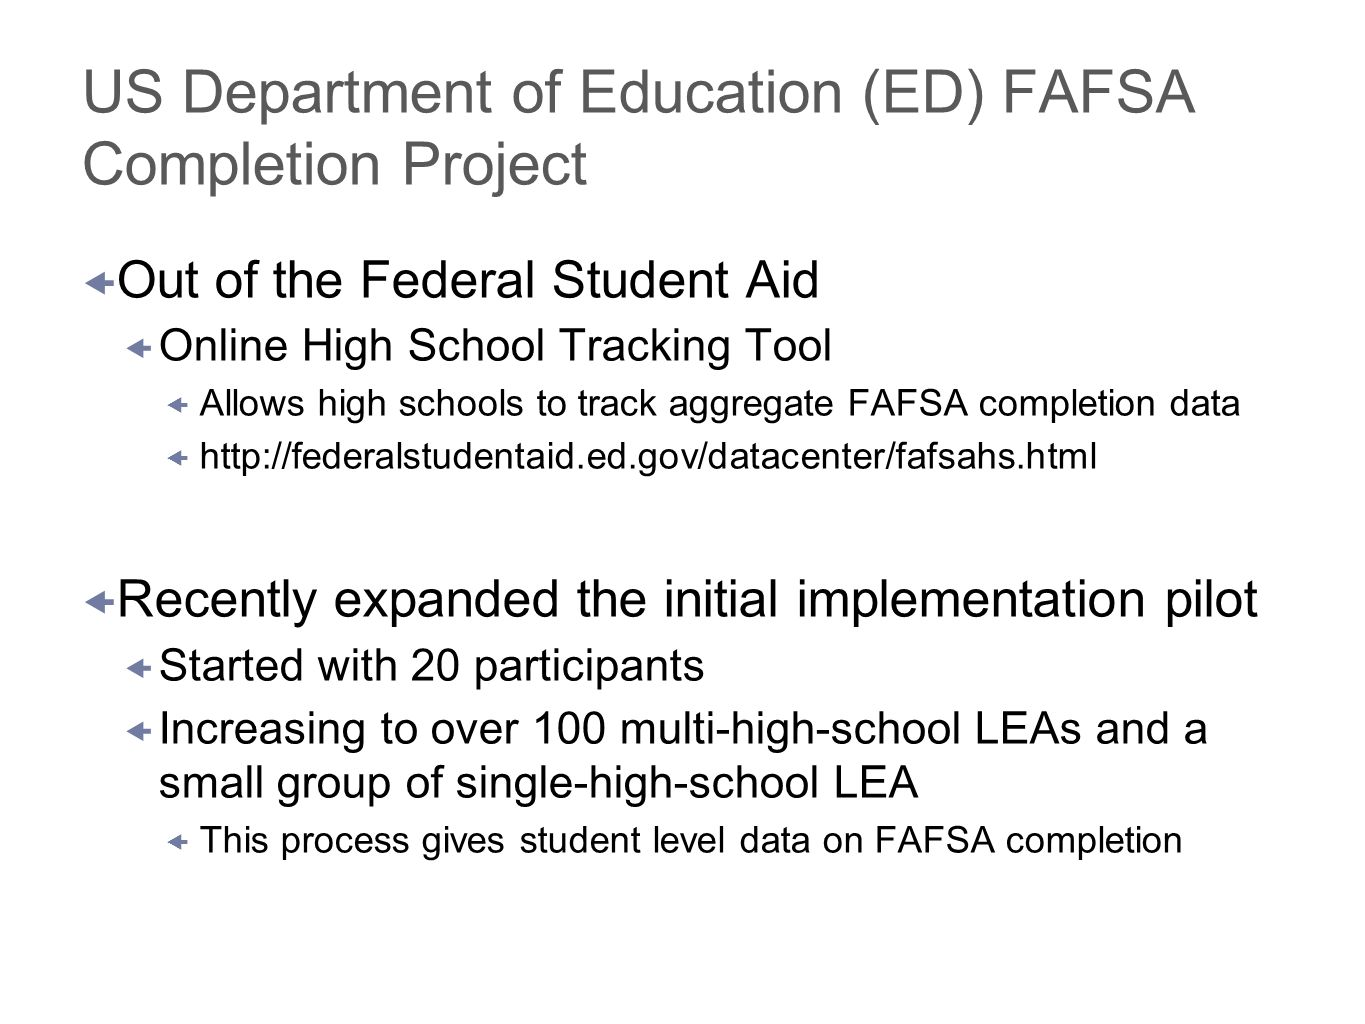 US Department of Education (ED) FAFSA Completion Project Out of the Federal Student Aid Online High School Tracking Tool Allows high schools to track aggregate FAFSA completion data http://federalstudentaid.ed.gov/datacenter/fafsahs.html Recently expanded the initial implementation pilot Started with 20 participants Increasing to over 100 multi-high-school LEAs and a small group of single-high-school LEA This process gives student level data on FAFSA completion